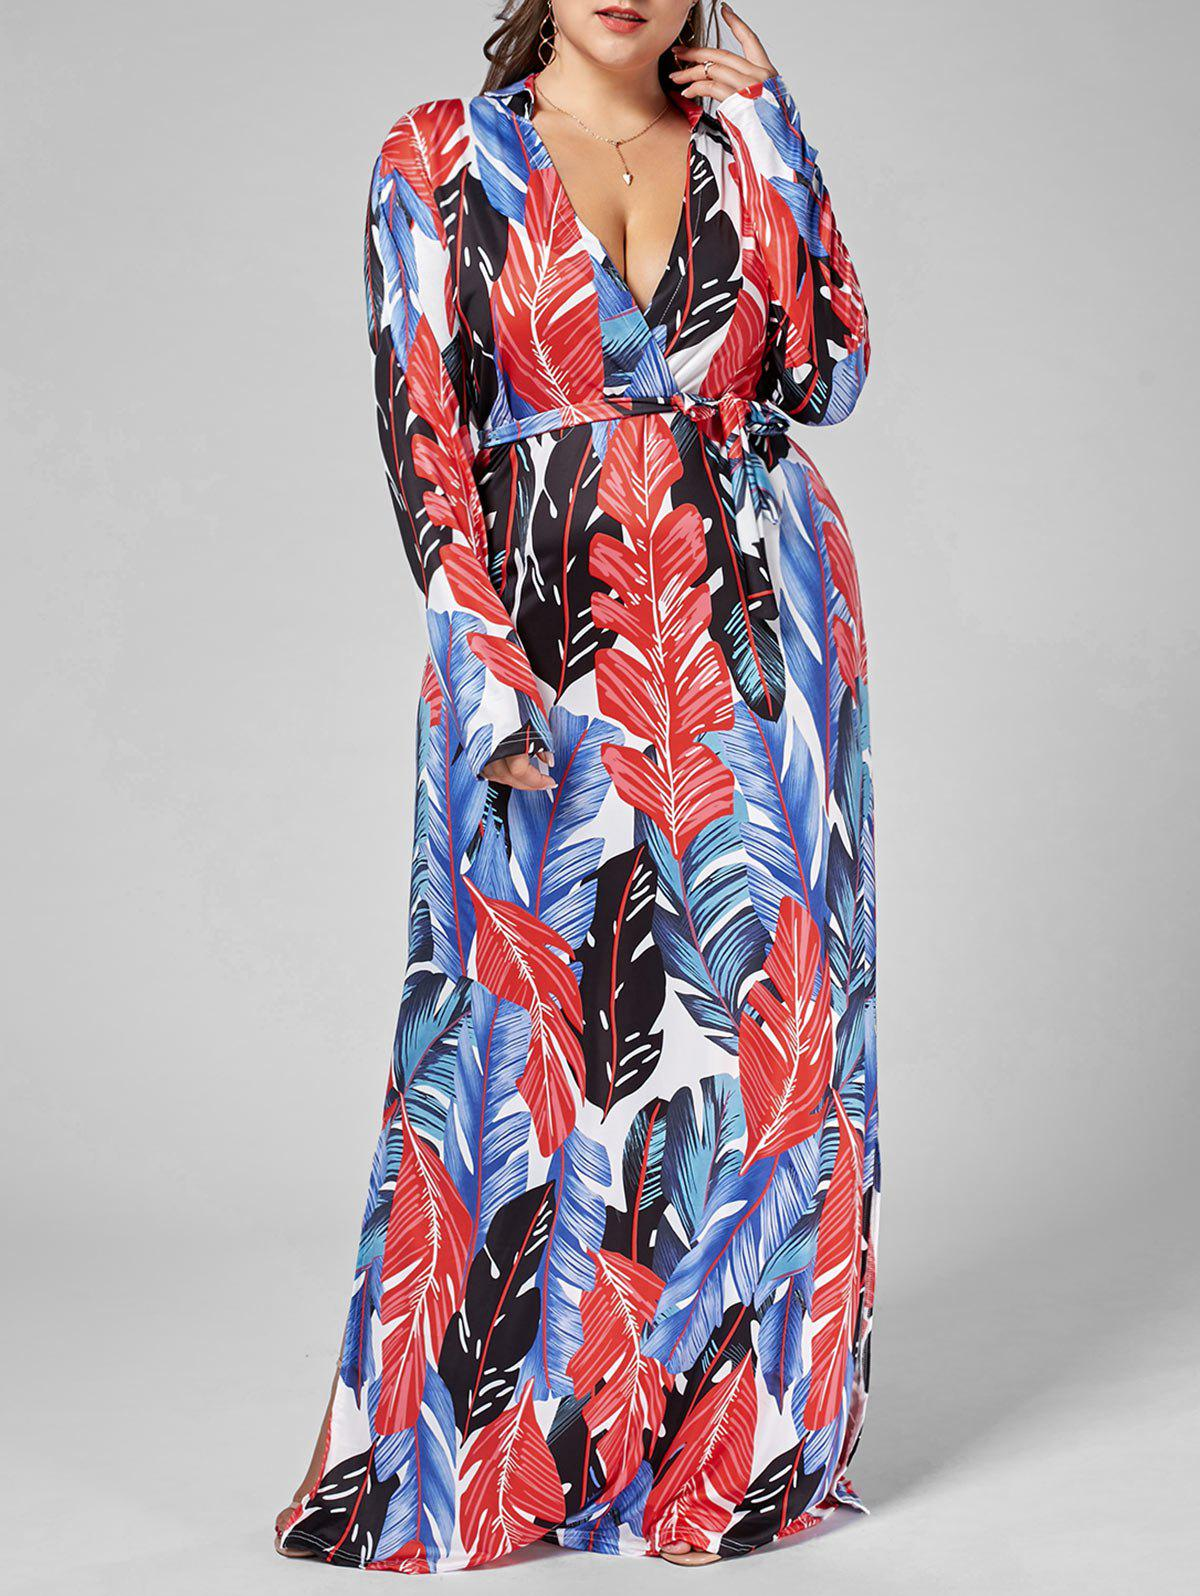 Chic Long Sleeve Palm Leaf Print Plus Size Dress